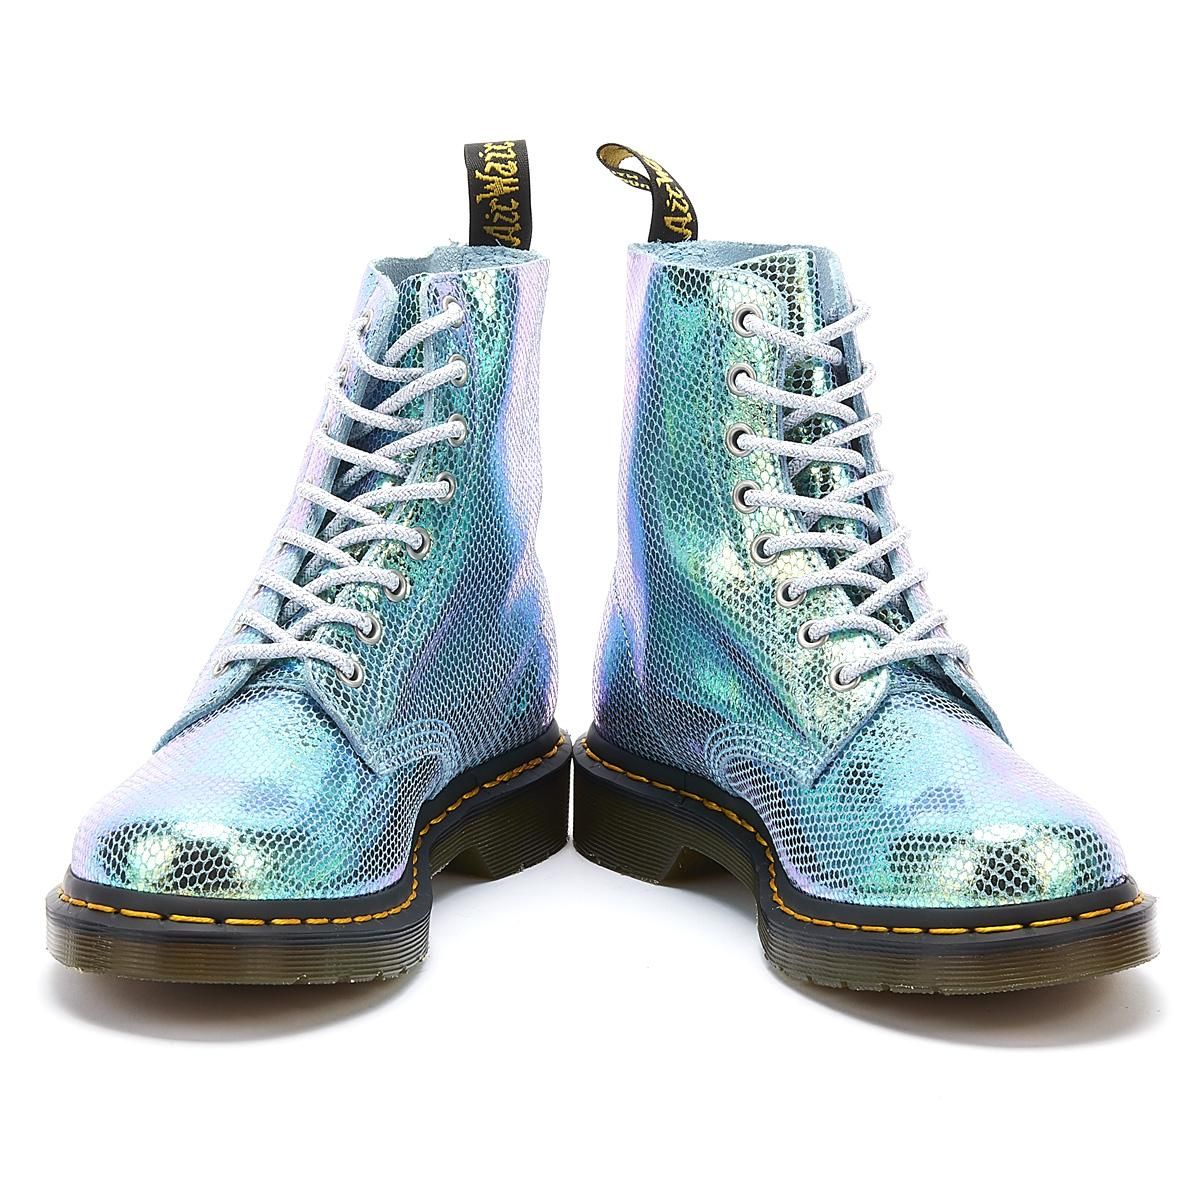 various colors skate shoes authorized site 1460 Iridescent Pascal 8-eye Boots